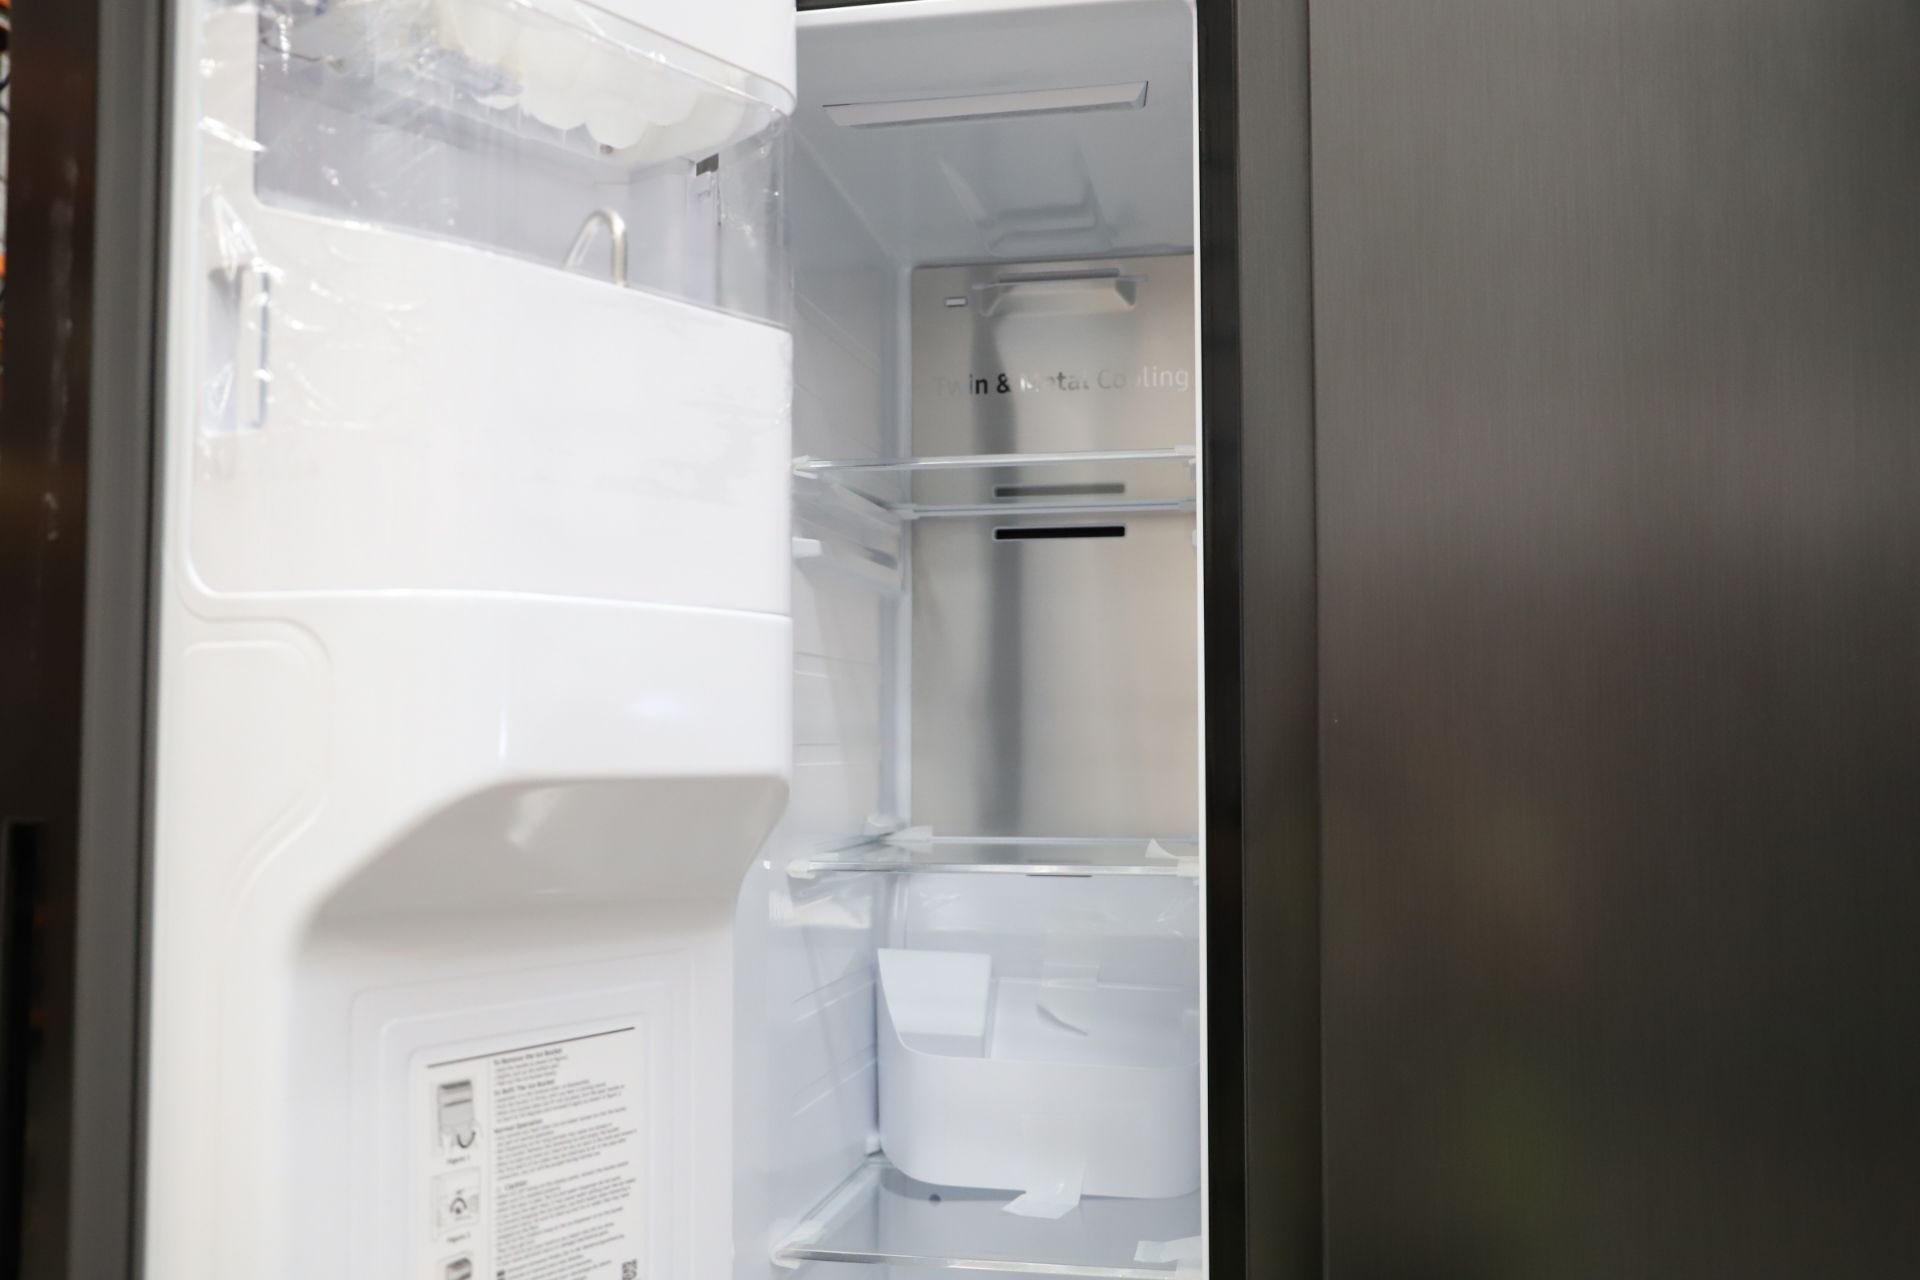 Pallet of 1 Samsung Water & Ice Fridge freezer. Latest selling price £1,799.99 - Image 7 of 10